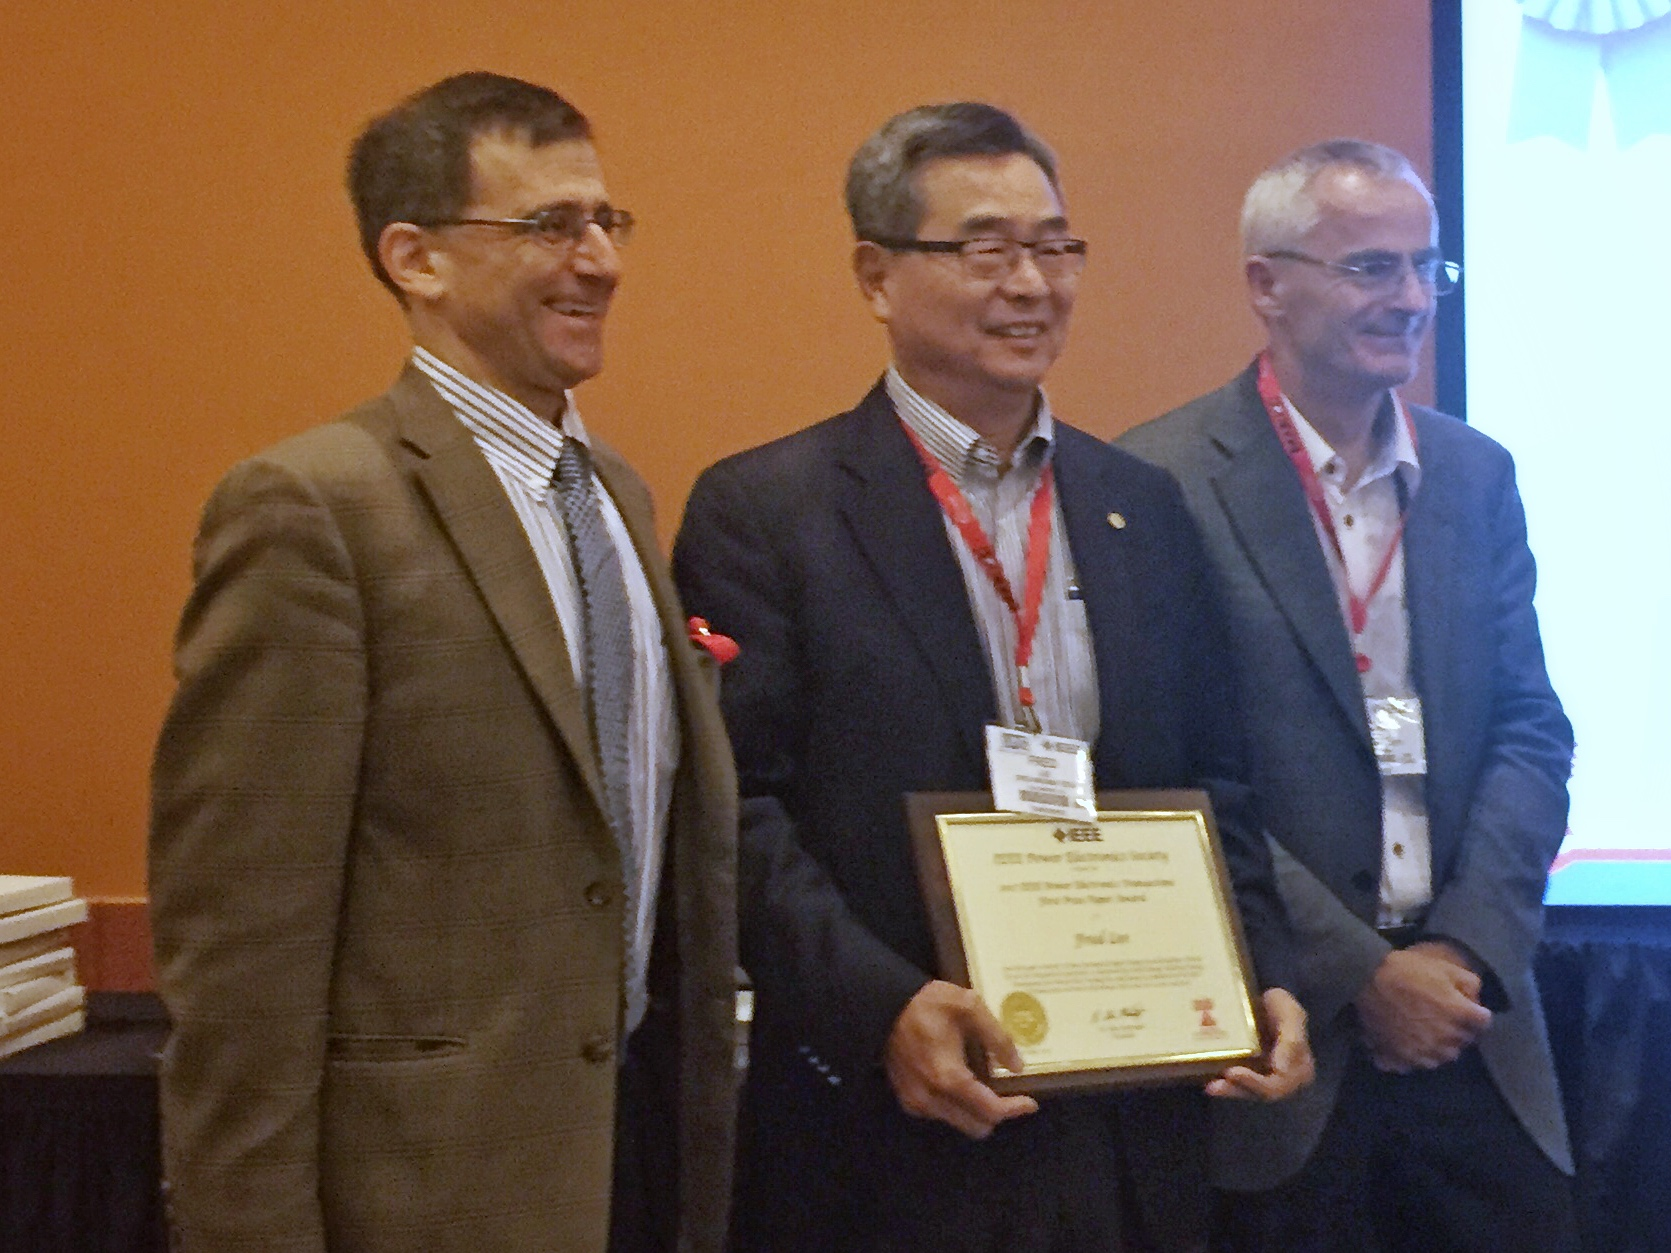 CPES Professor Dr. Fred C. Lee receives First Place in the TPEL Prize Paper Award.